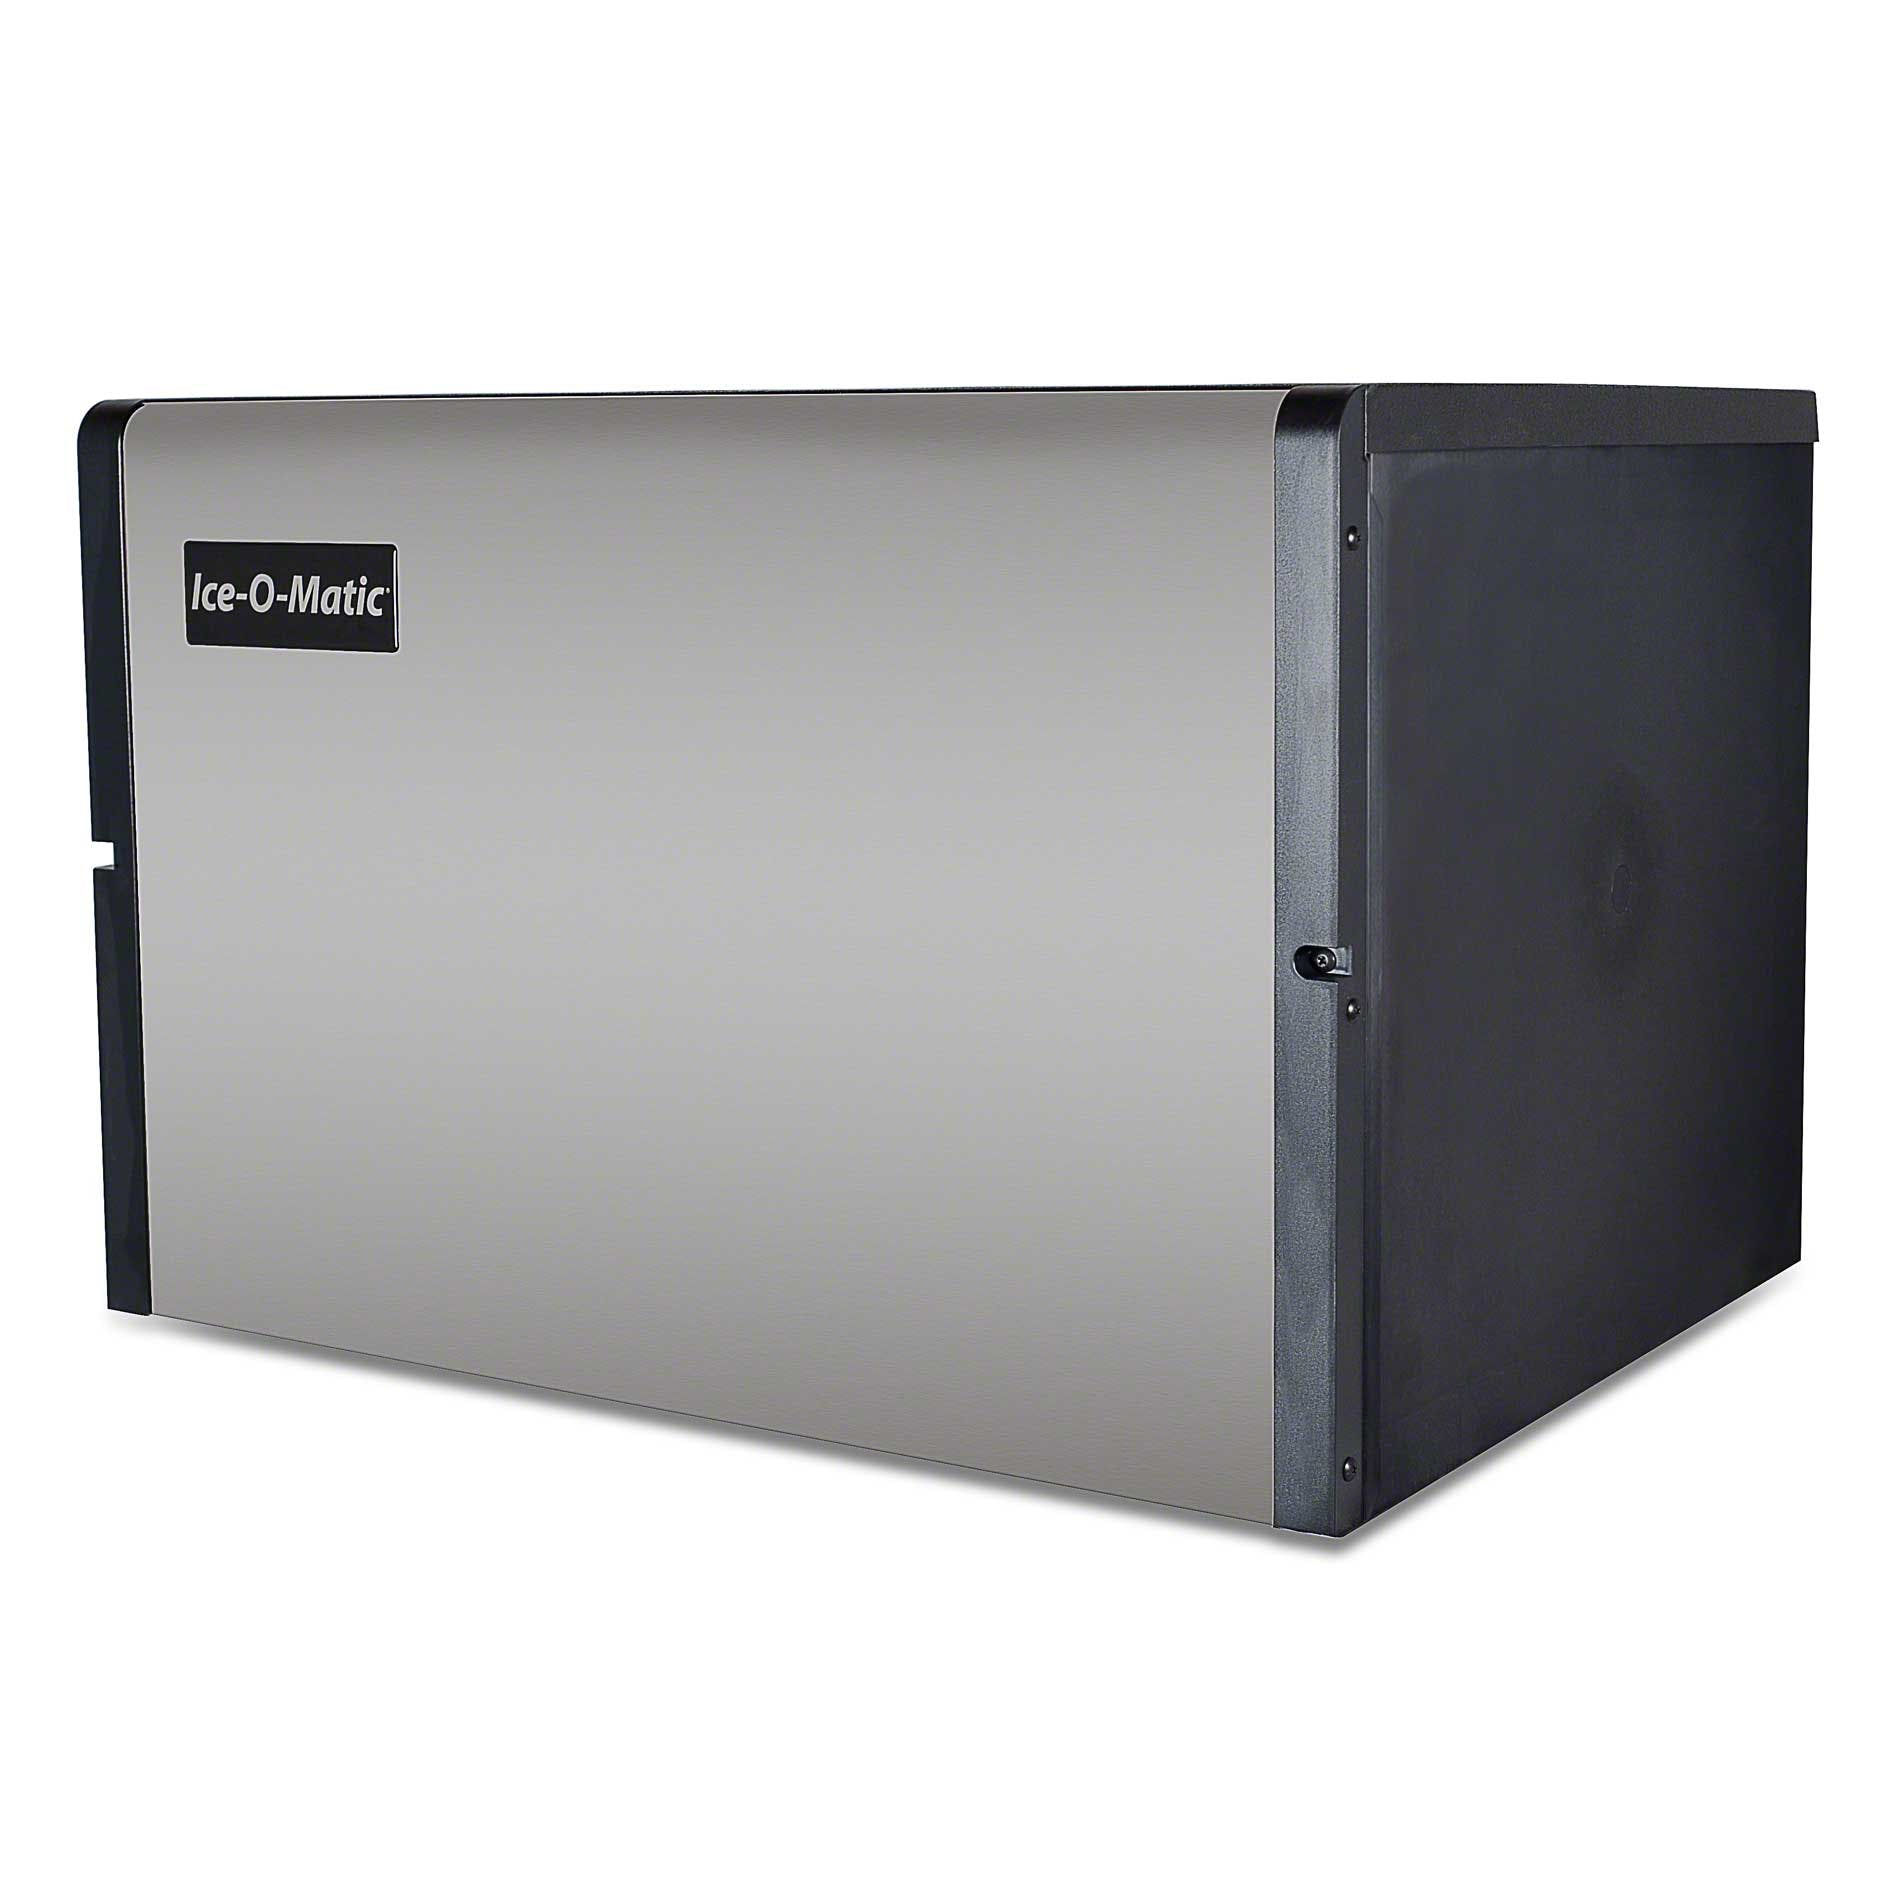 Ice-O-Matic - ICE0606FT 652 lb Full Cube Ice Machine Ice machine sold by Food Service Warehouse